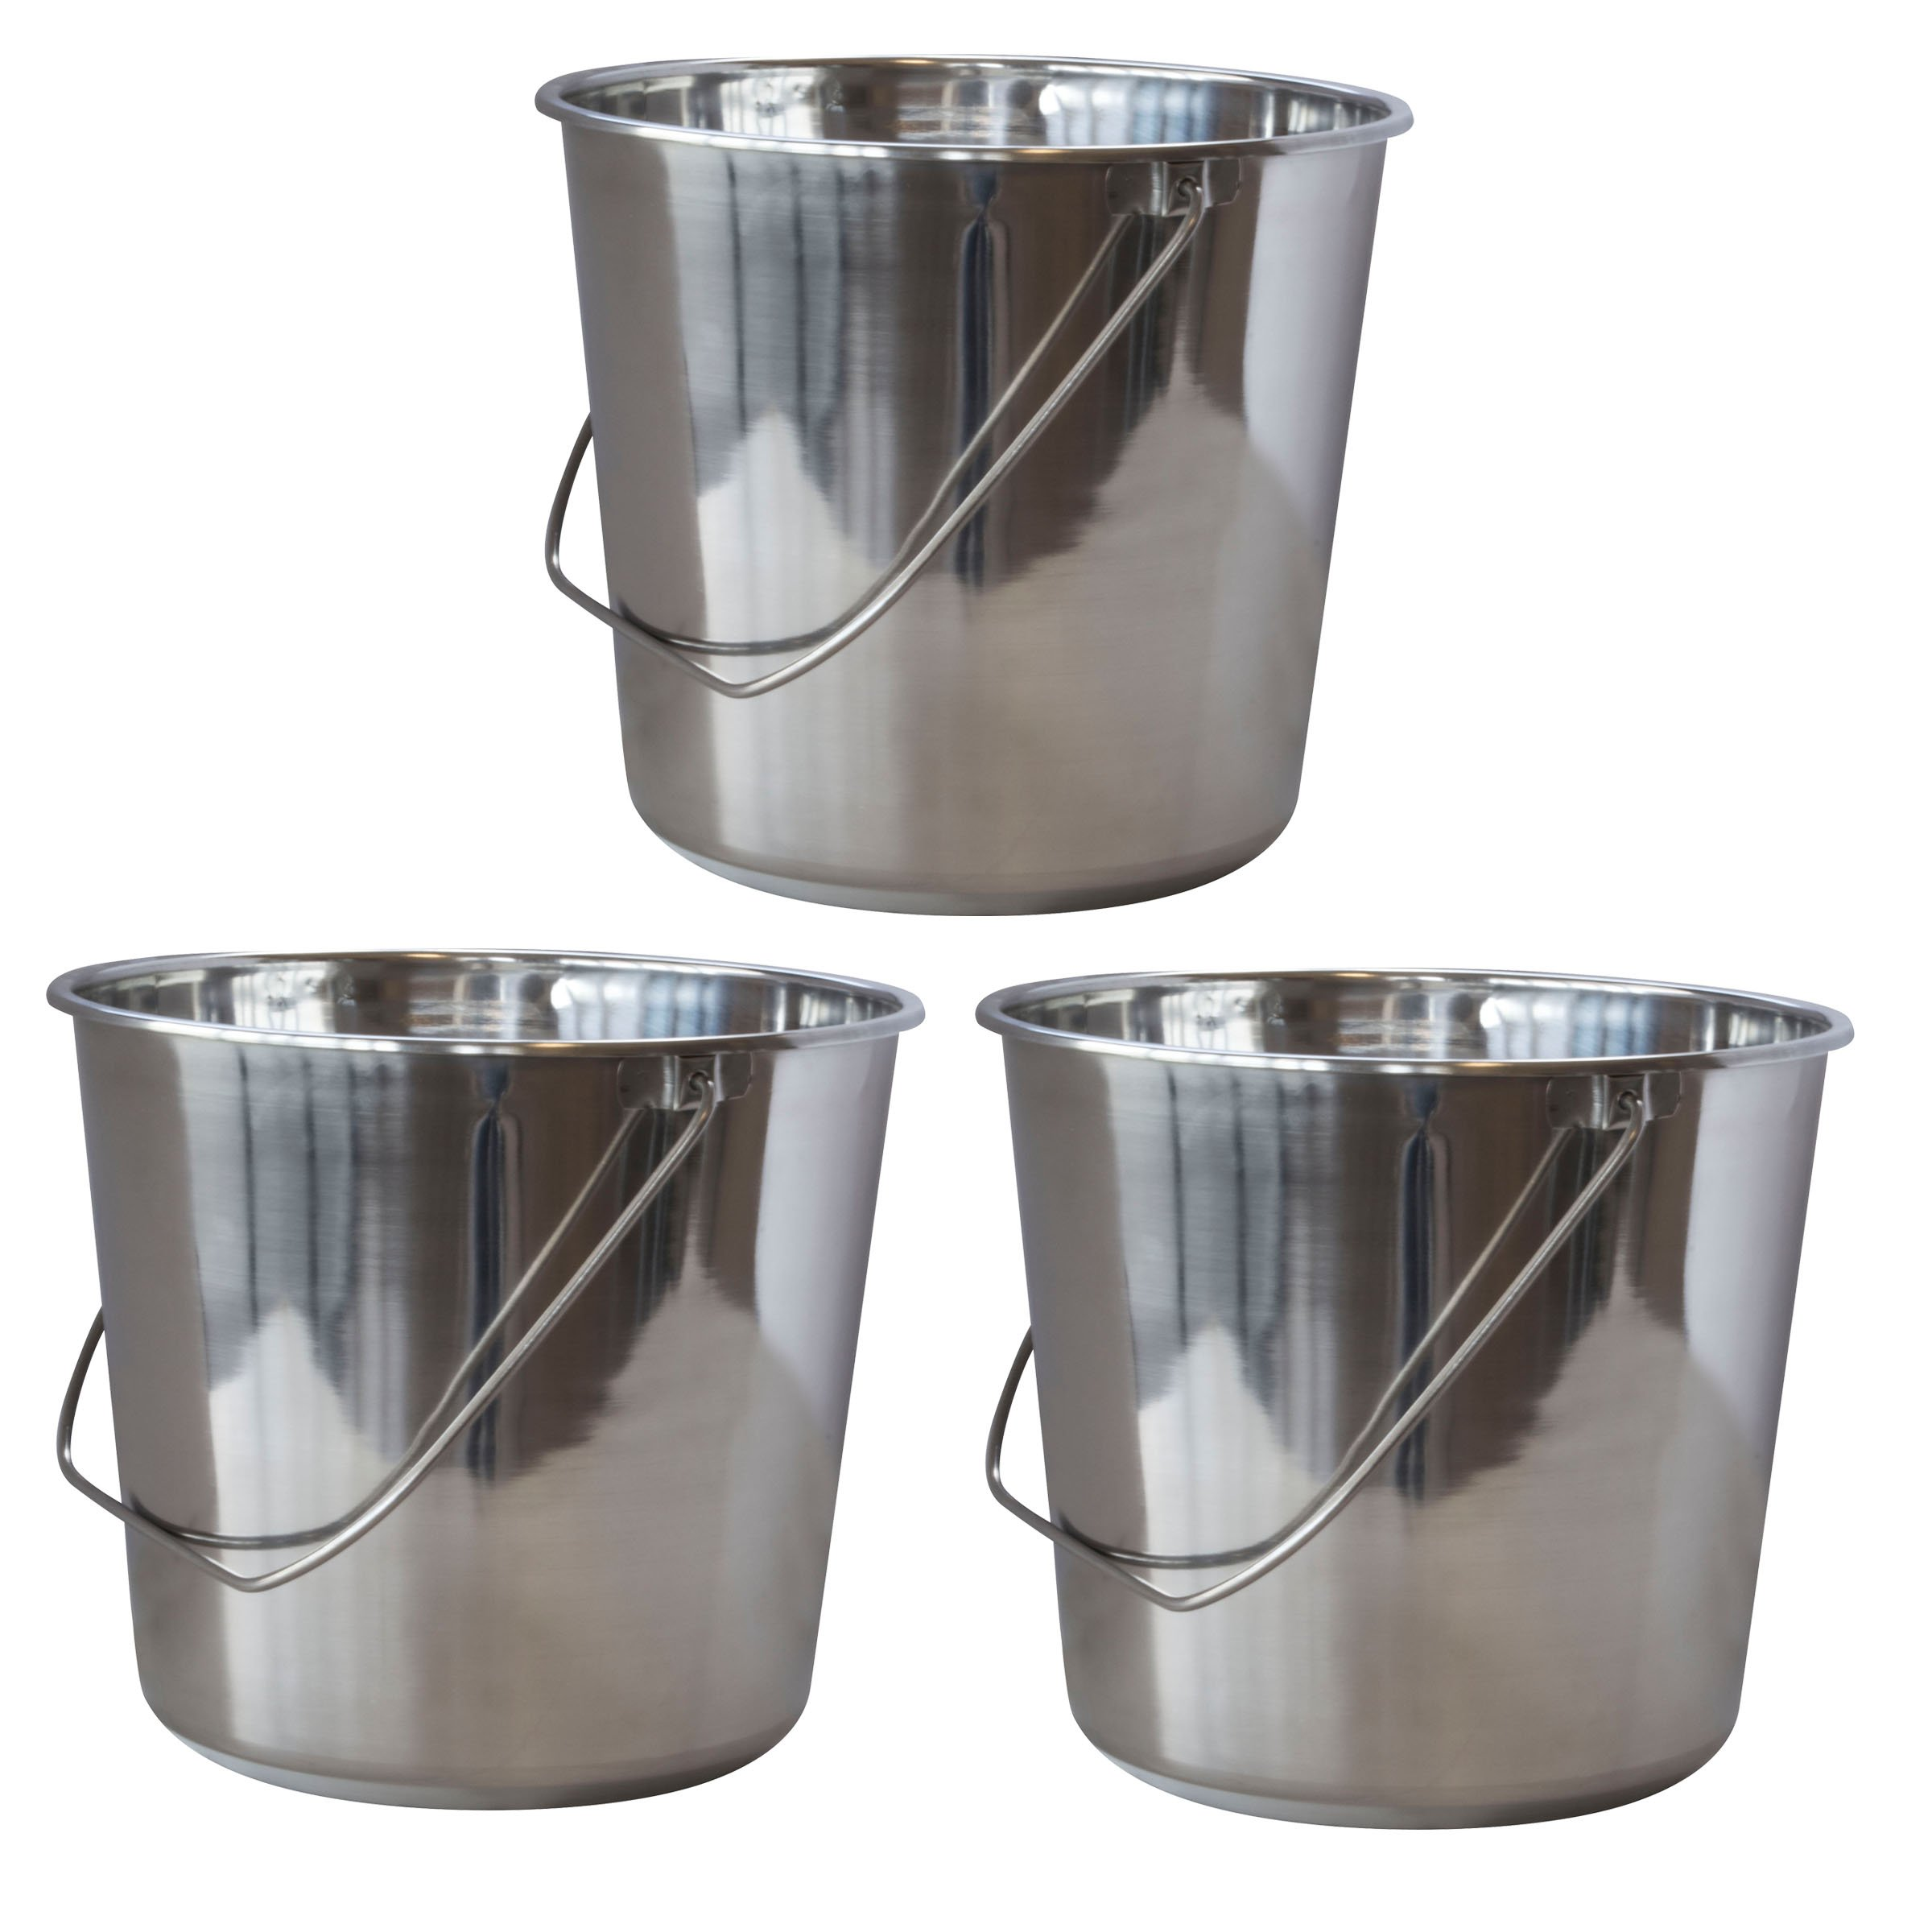 SSB422SET Large Stainless Steel Bucket Set - 3Piece by AmeriHome